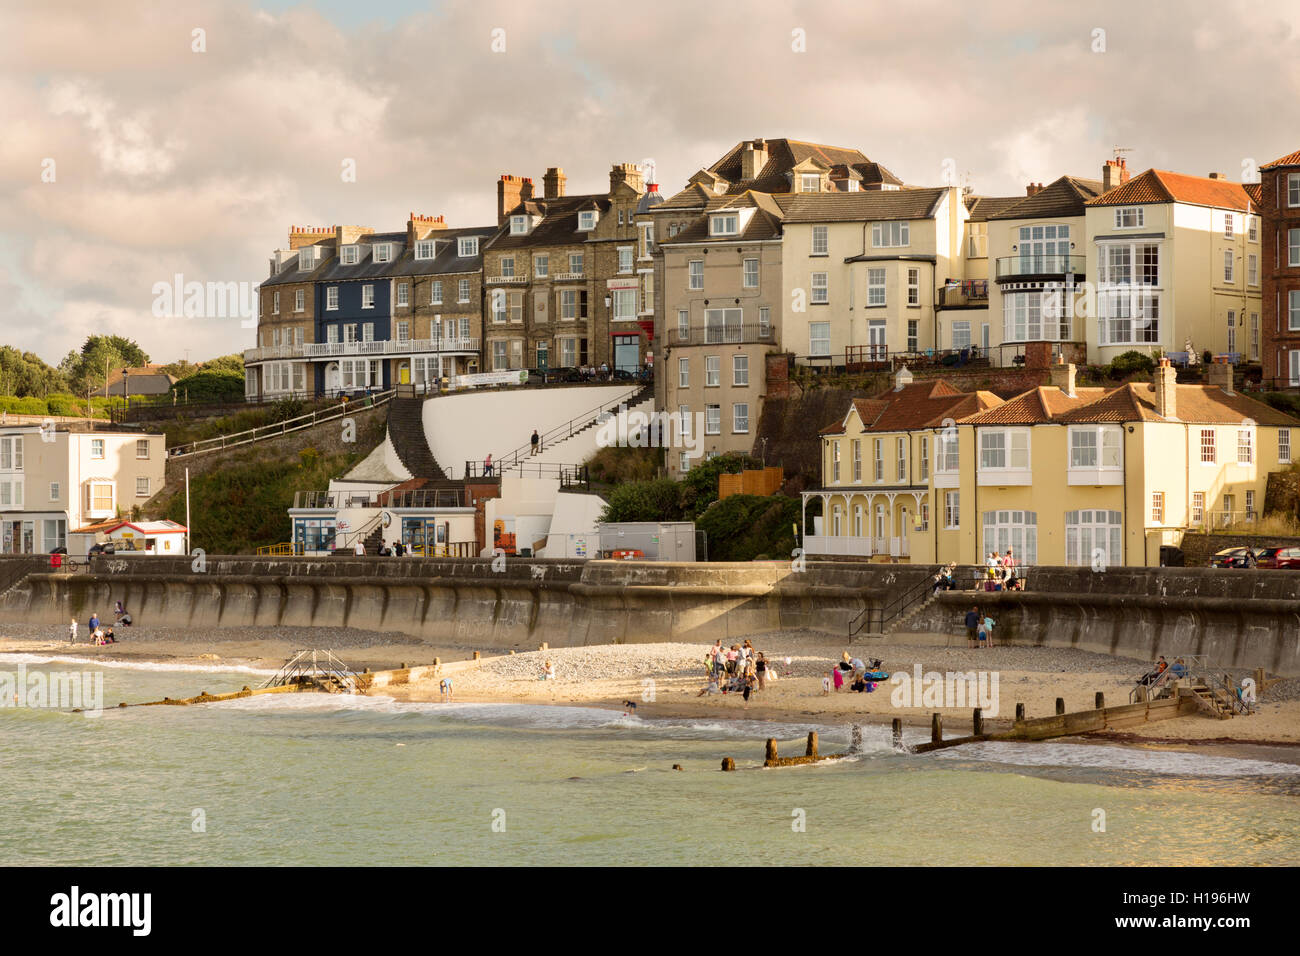 Cromer beach and seafront, Cromer, north Norfolk coast, Norfolk, England UK - Stock Image